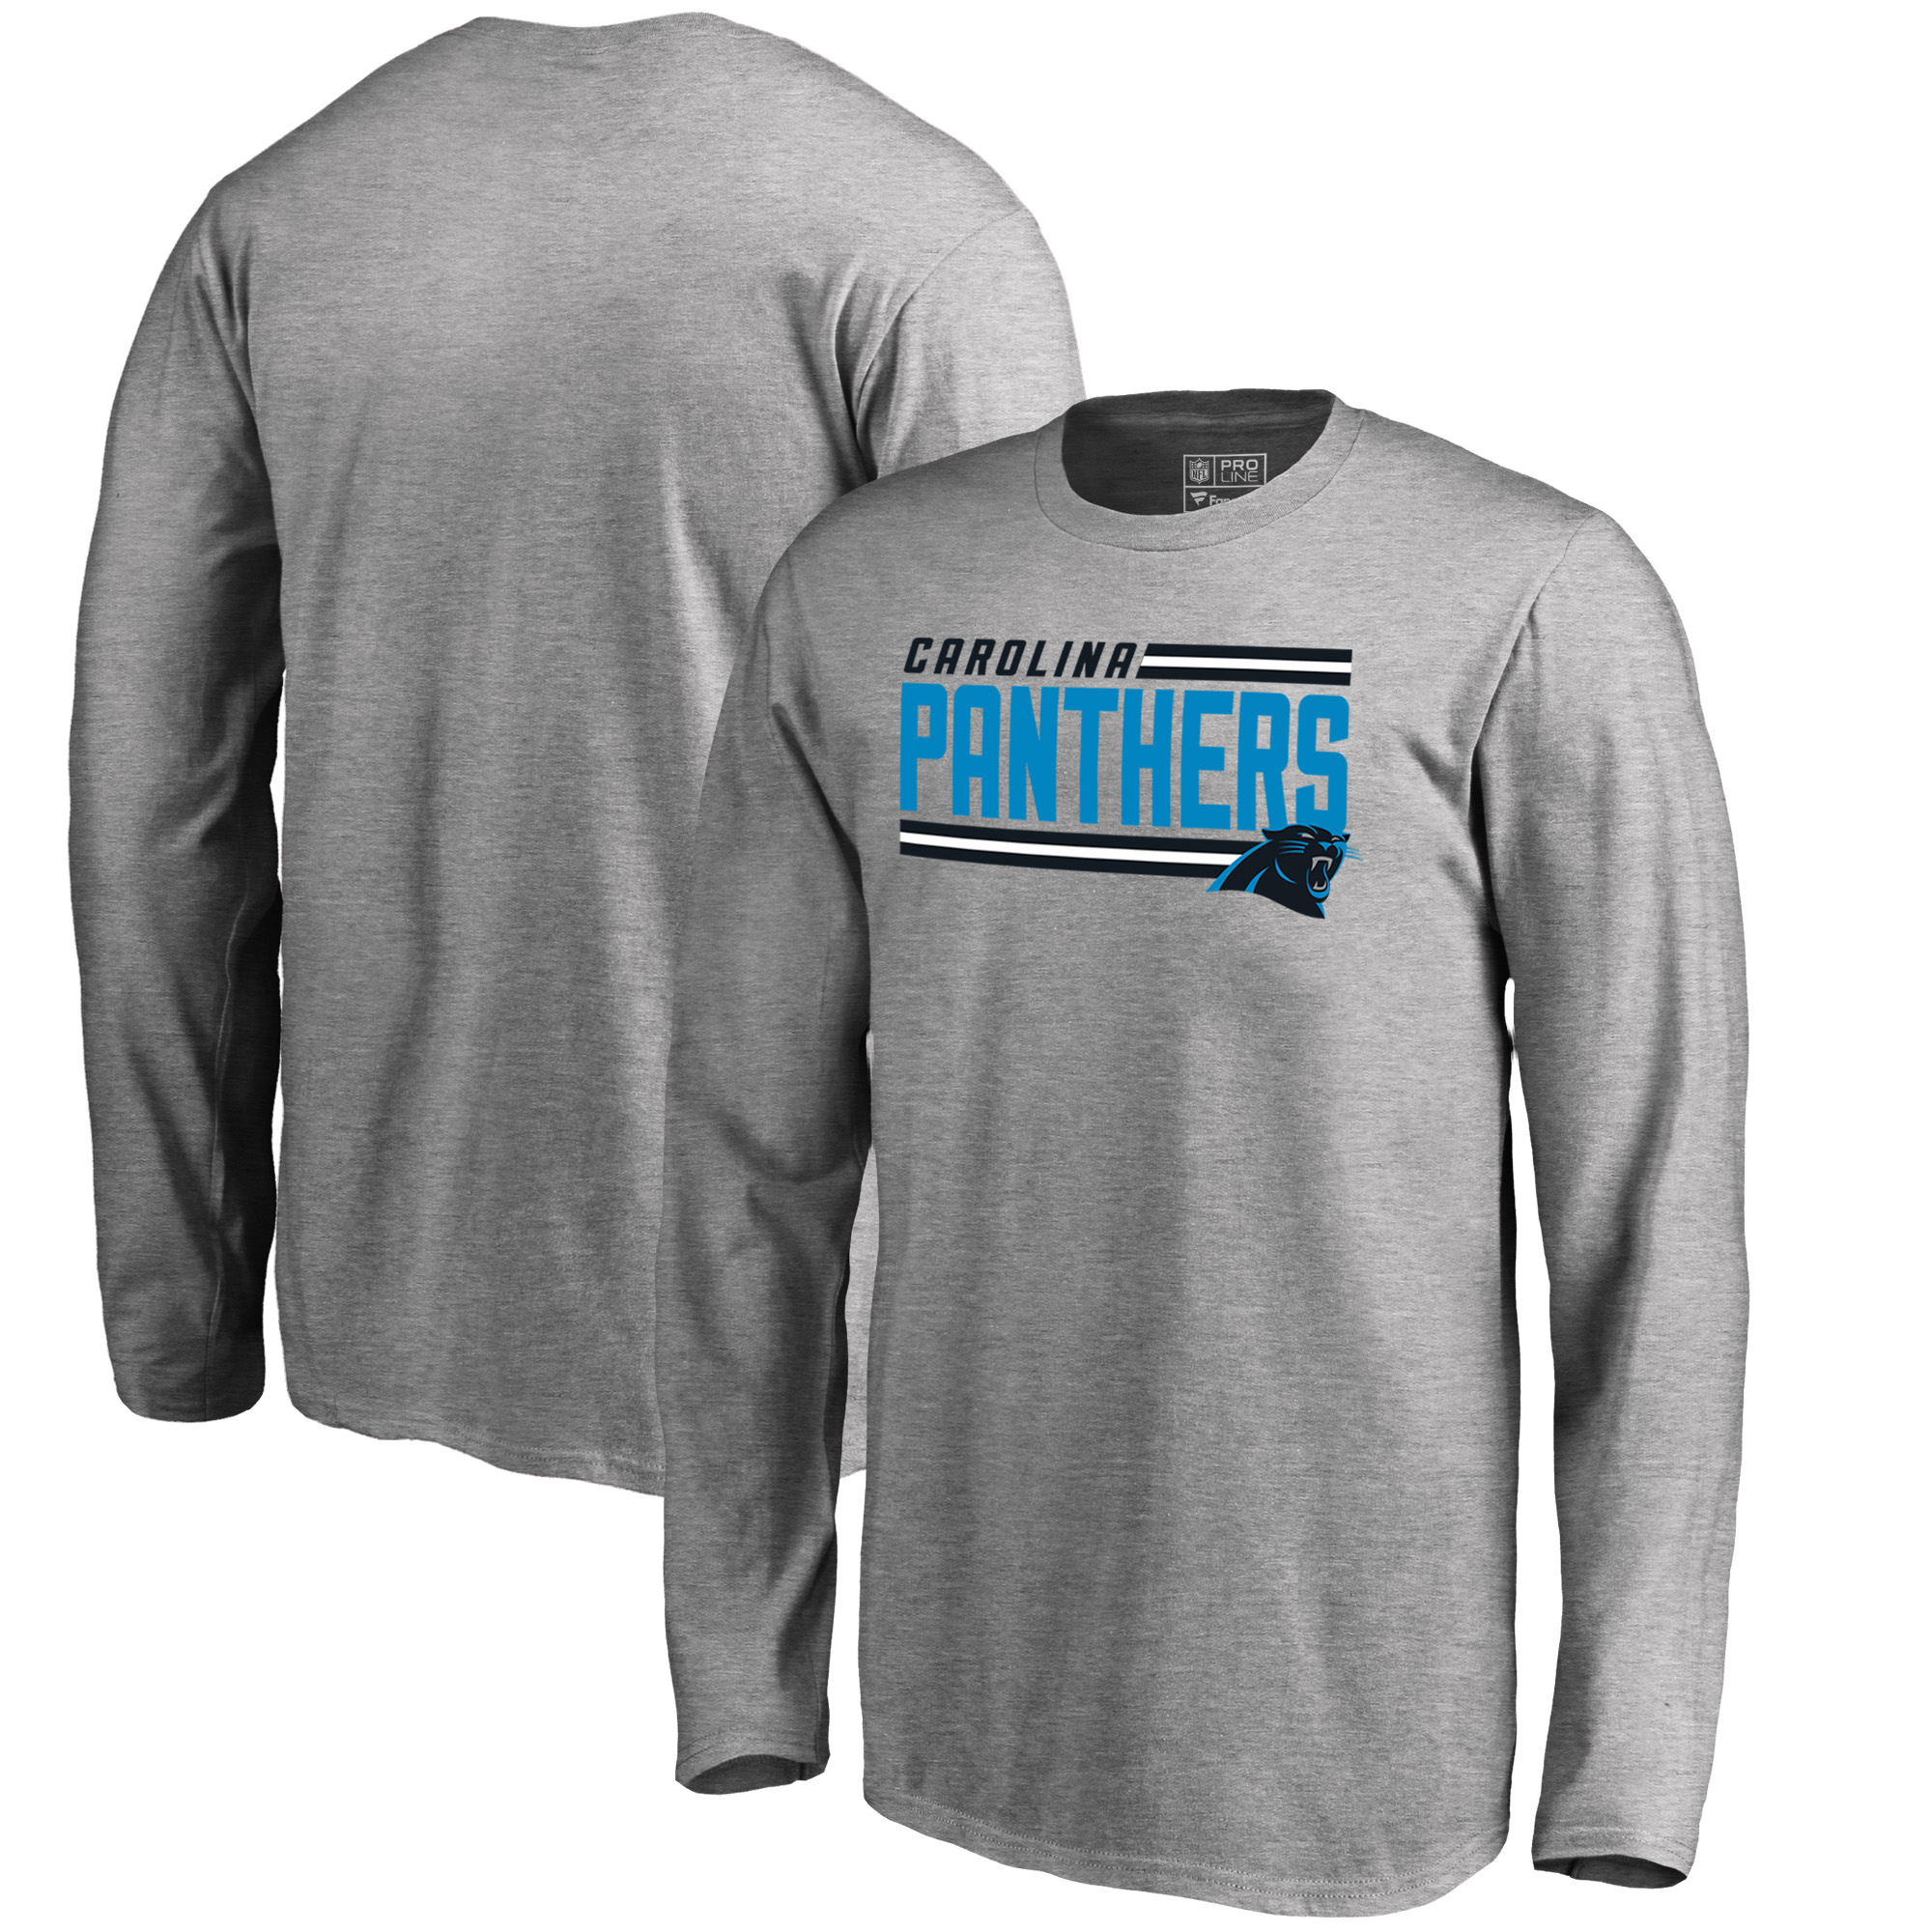 Carolina Panthers NFL Pro Line by Fanatics Branded Youth Iconic Collection On Side Stripe Long Sleeve T-Shirt - Ash